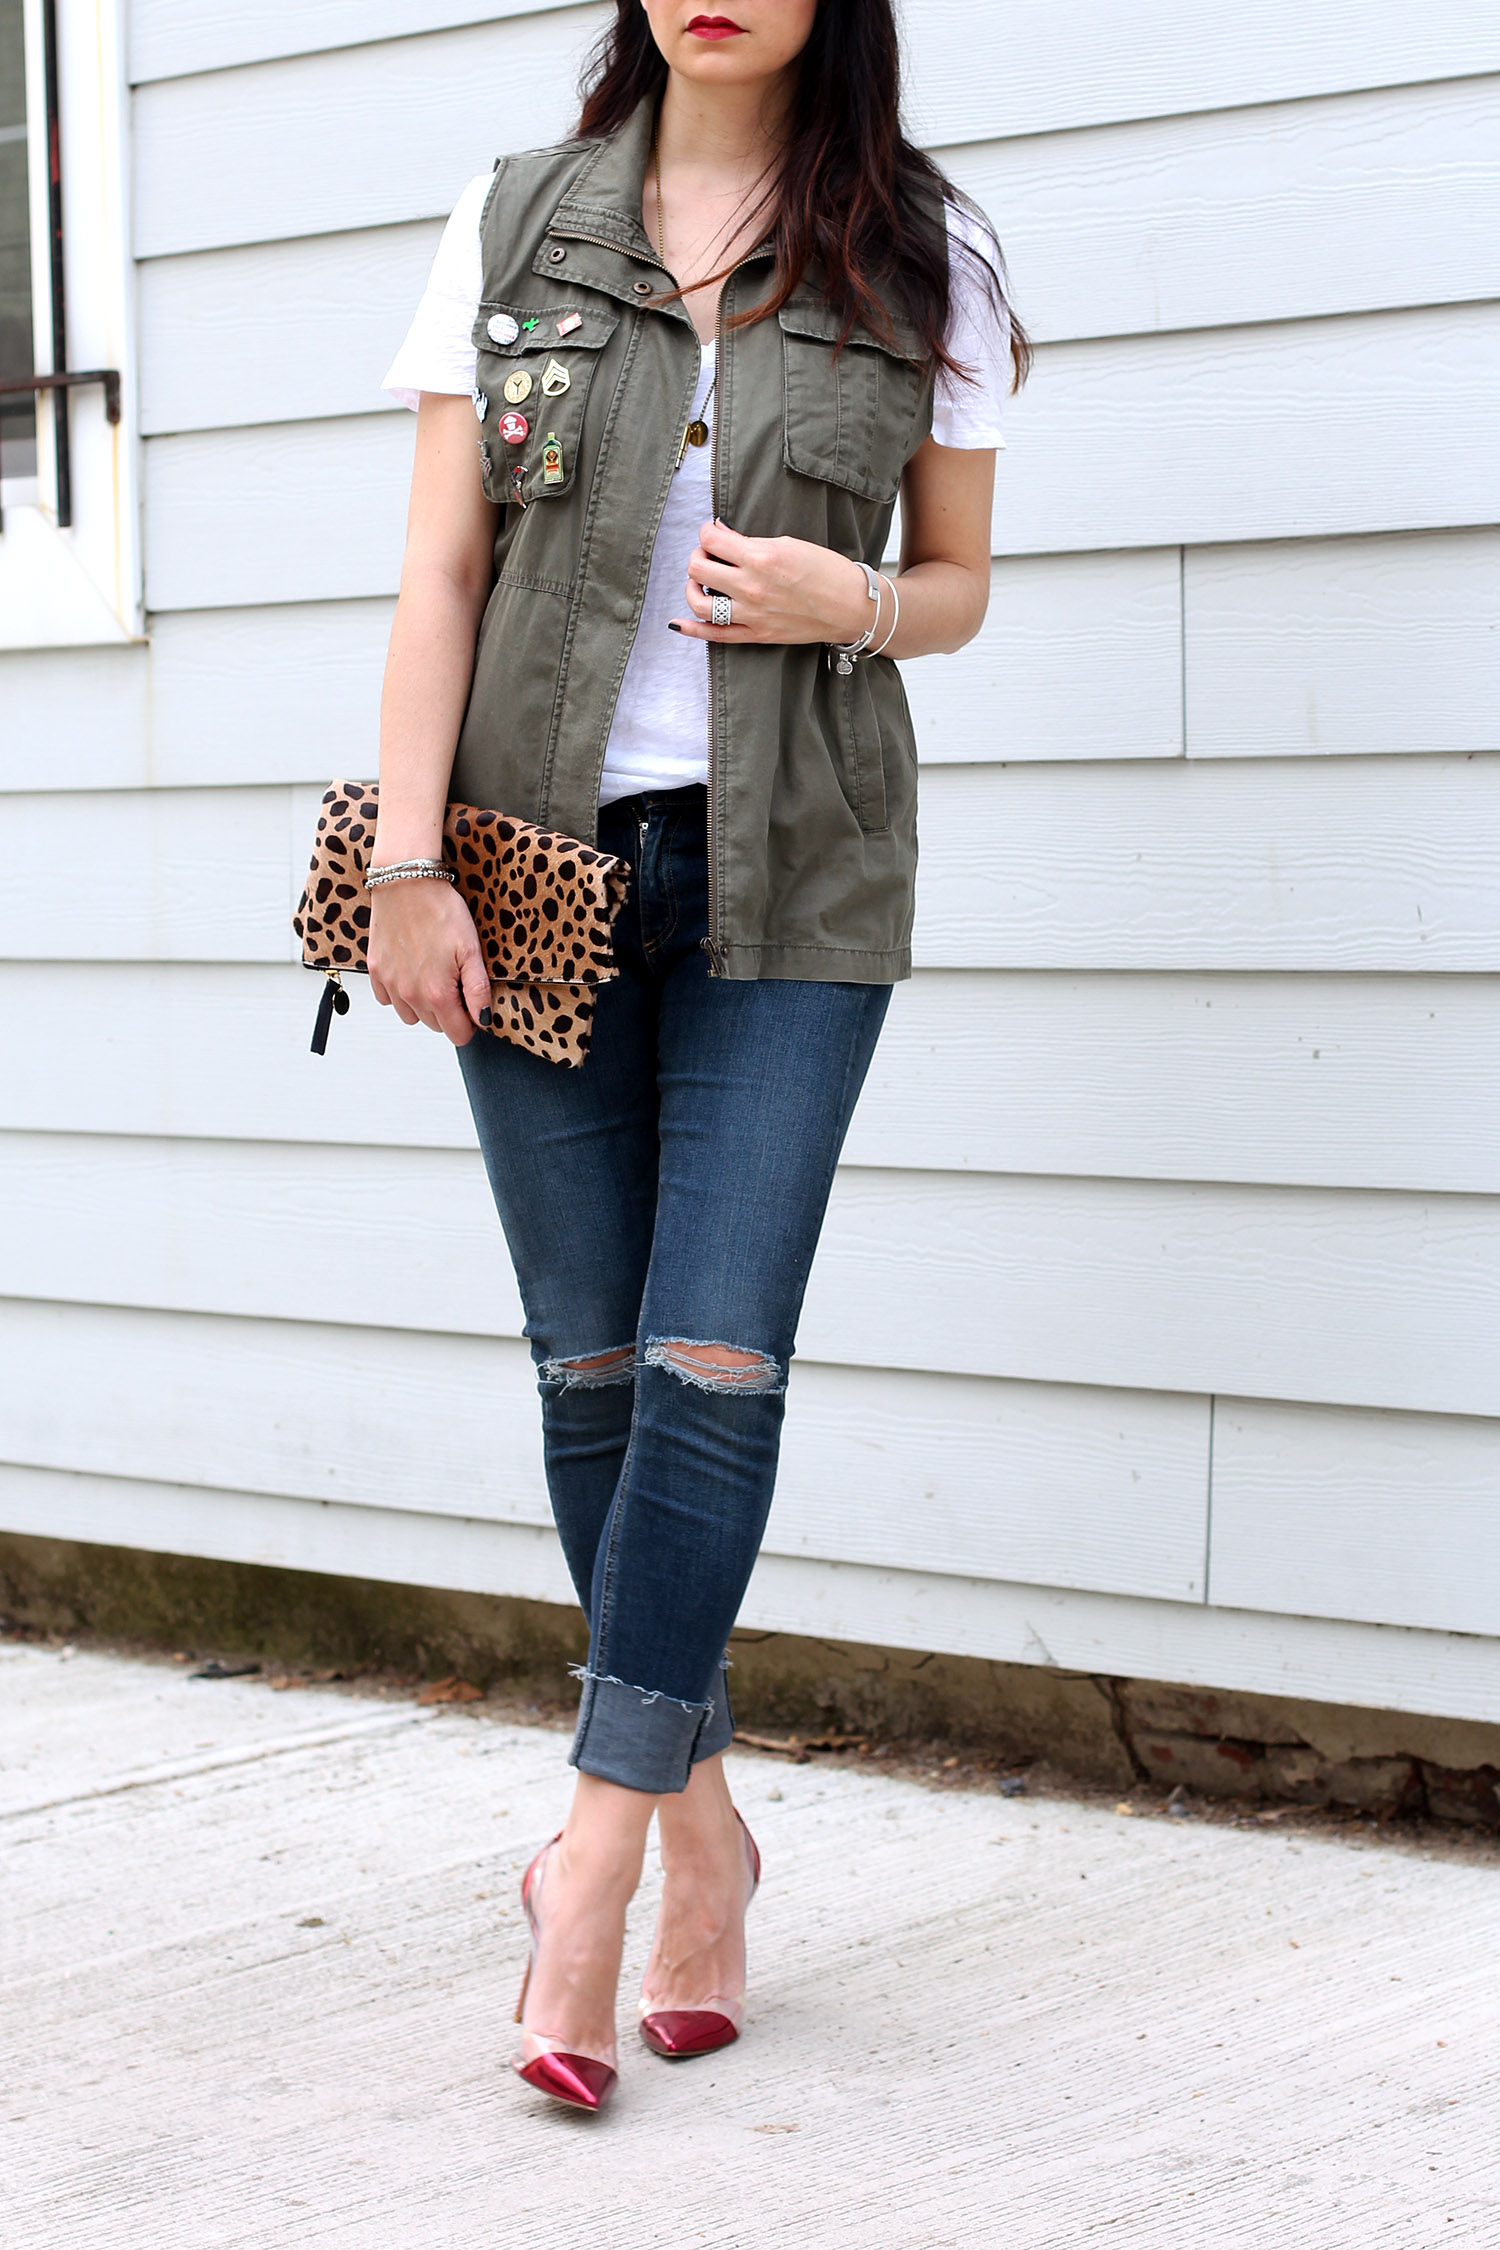 How to Style a Utility Vest